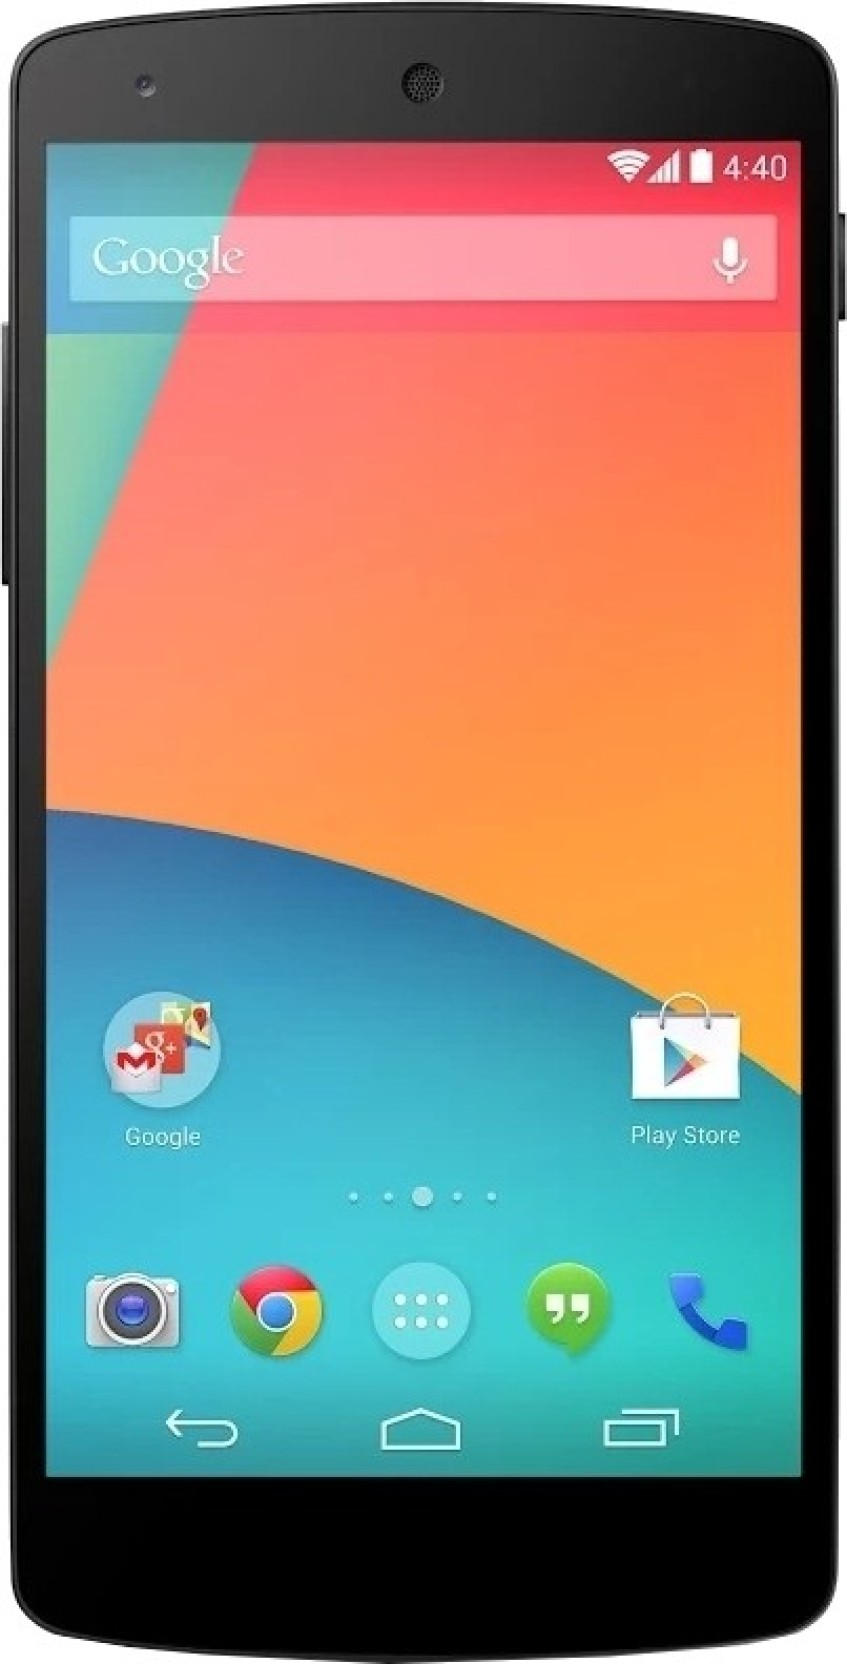 Nexus 5 Black 32 Gb Online At Best Price Only On Lg G2 D802 32gb White Free Flip Cover Add To Cart